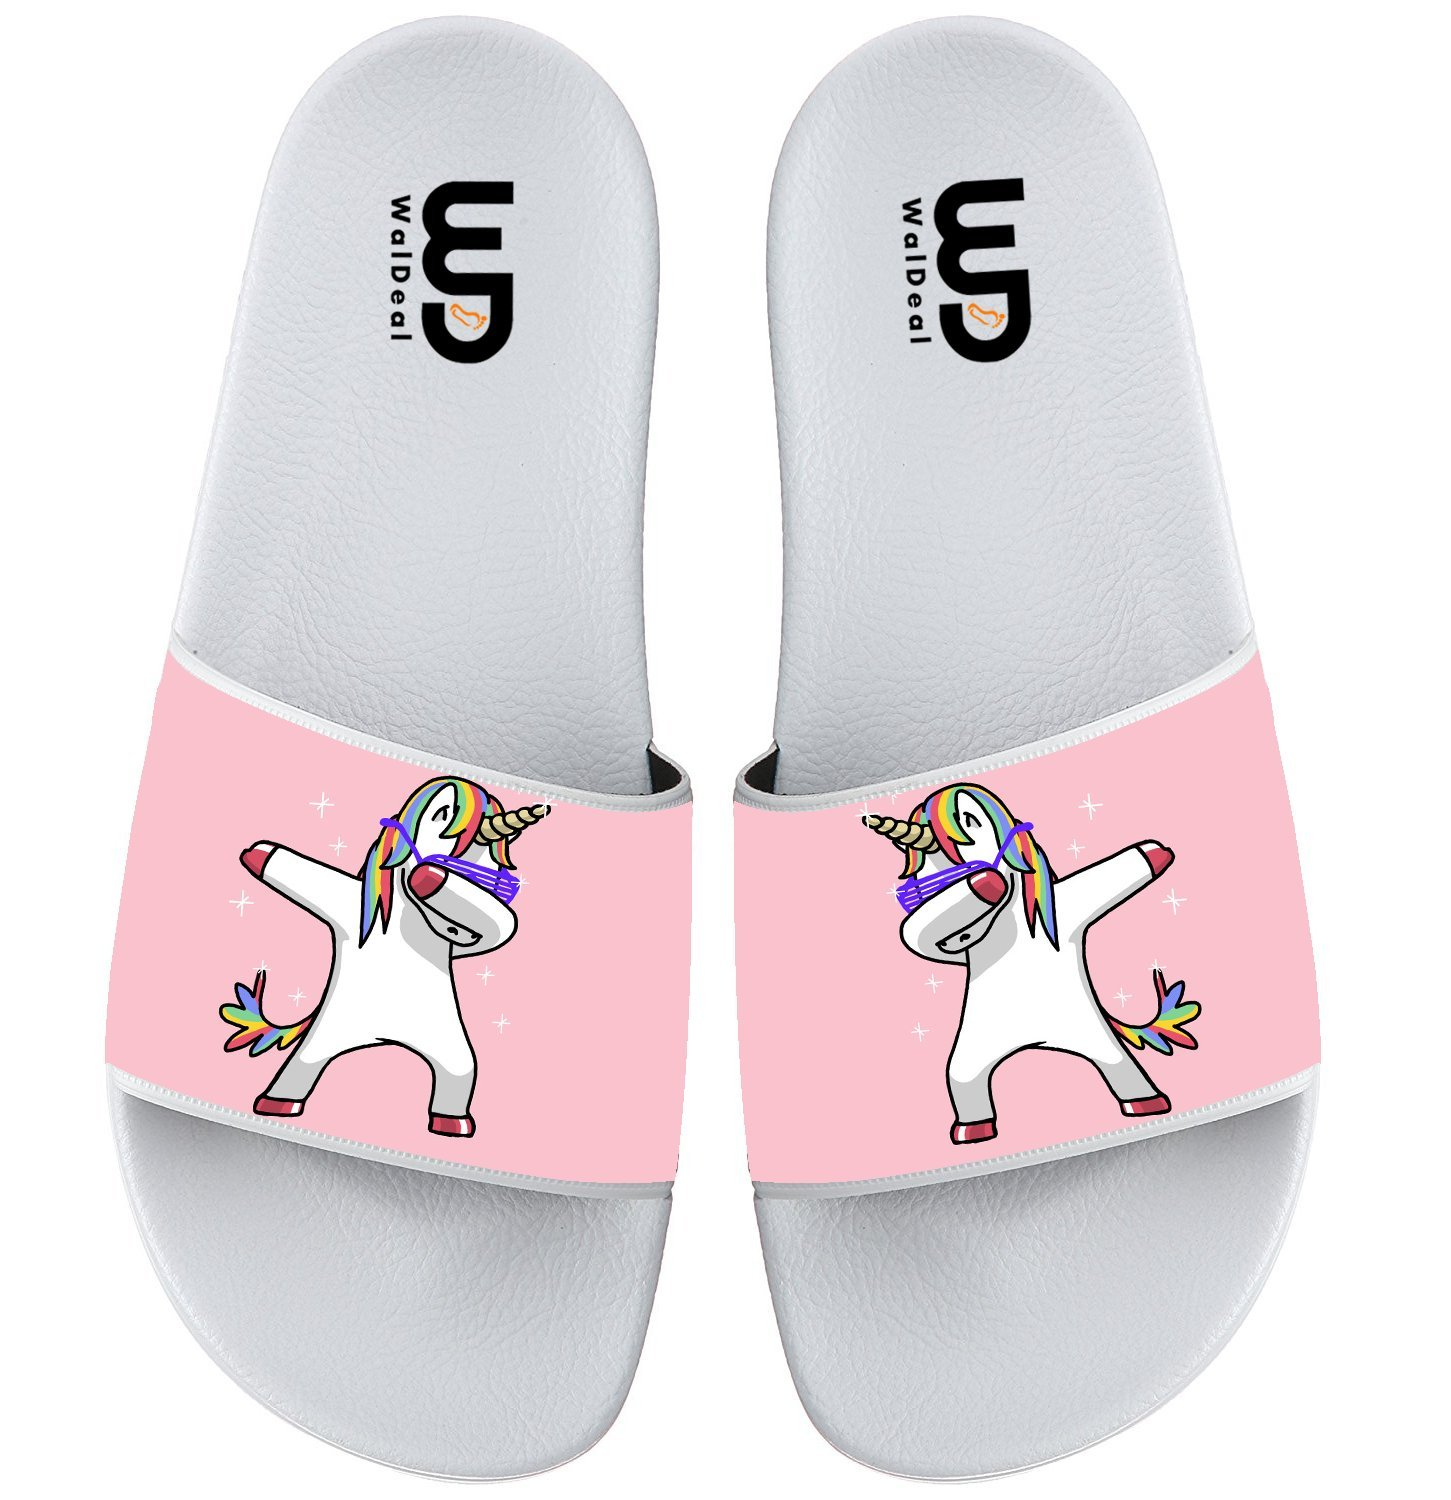 Unicorn With Rainbows And Clouds Summer Non-slip Slide Sandals Home Shoes Beach Swim Flip Flops Indoor and Outdoor Slipper Women Men B075P2Y471 9 B(M) US|Unicorn Dabbing Pink